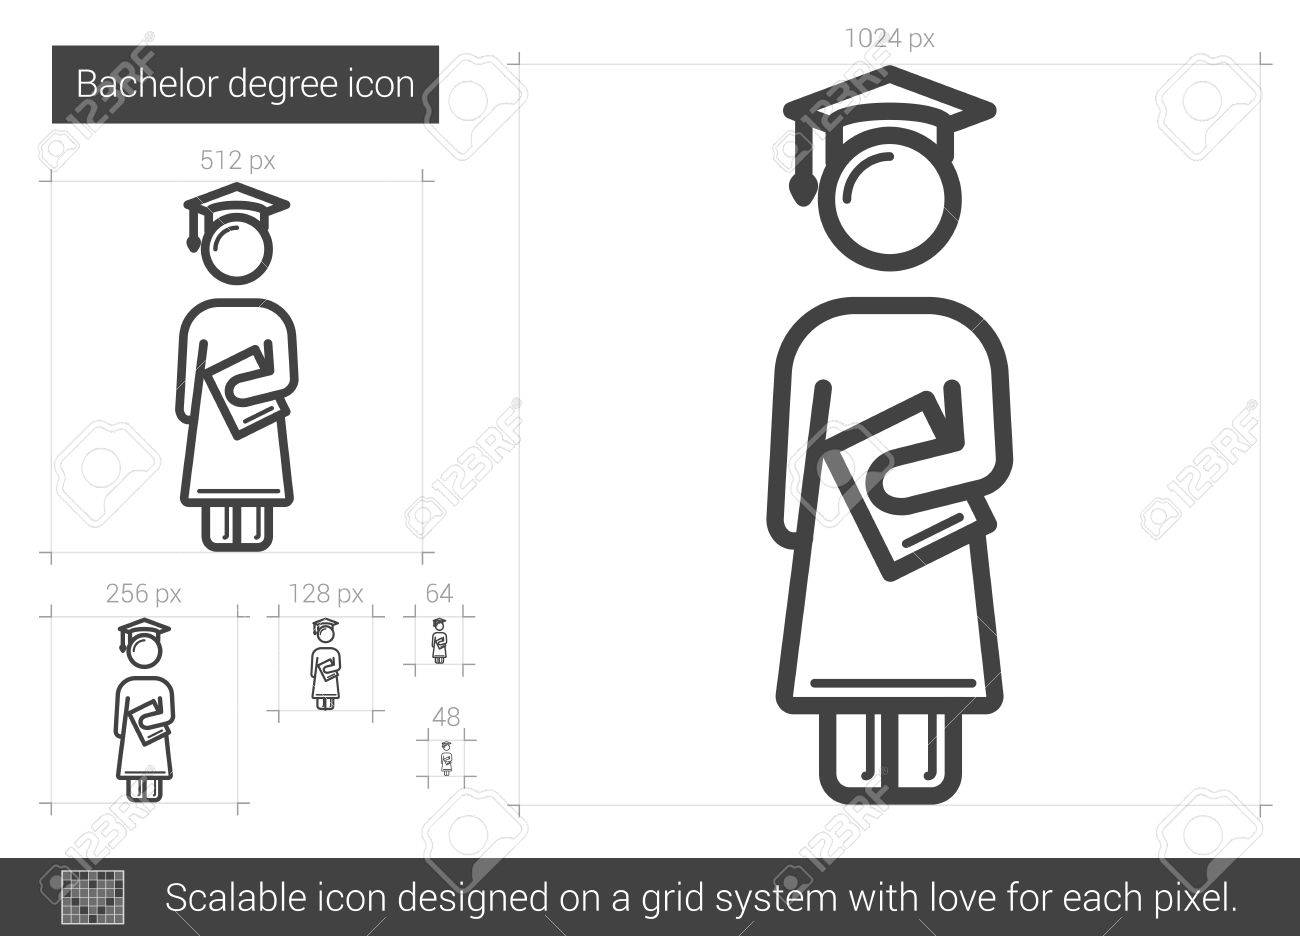 Bachelor Degree Vector Line Icon Isolated On White Background